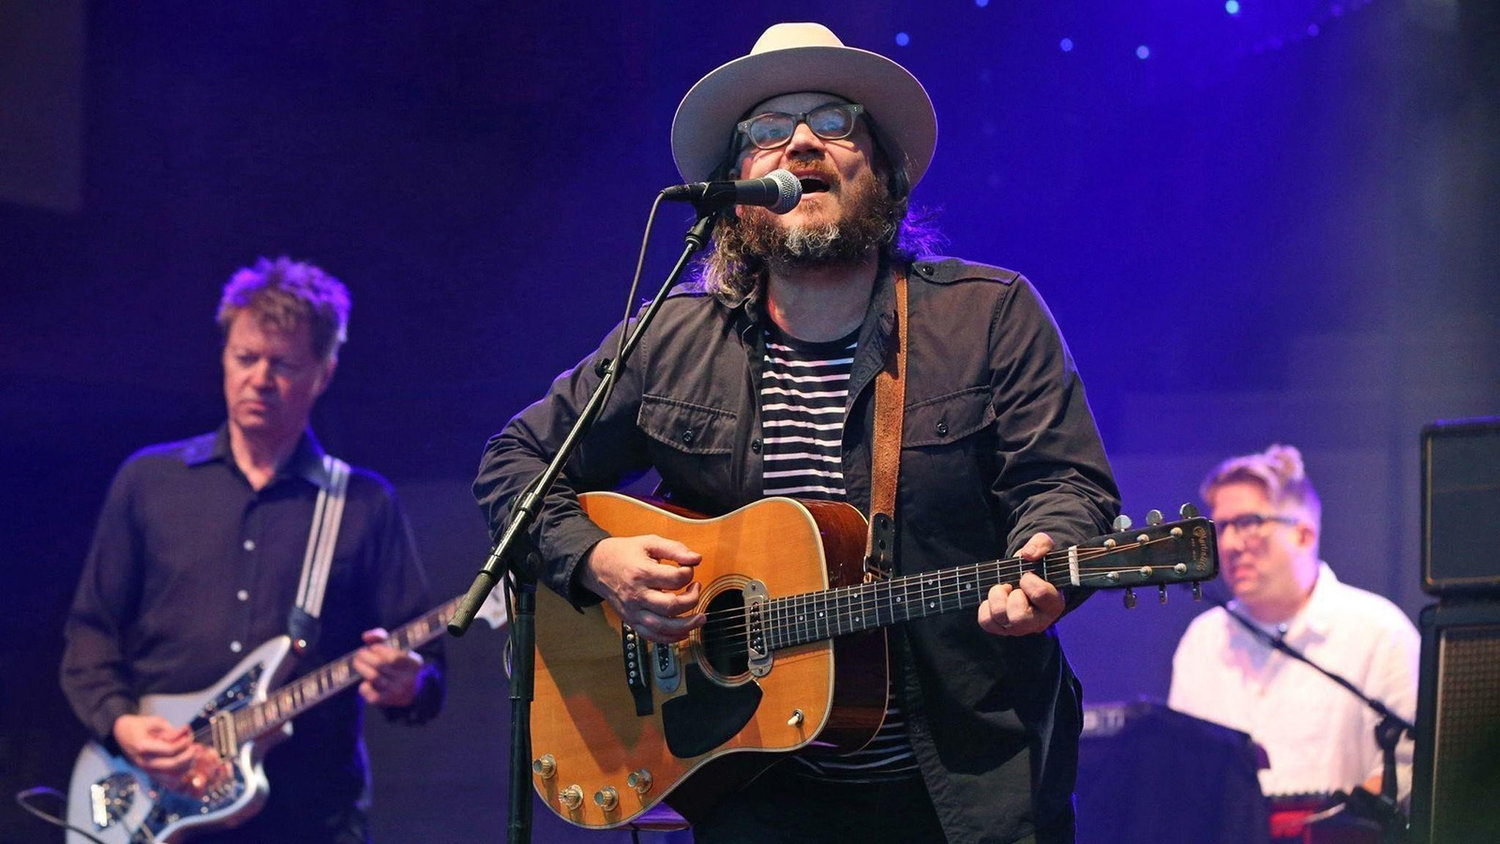 From left to right, Nels Cline, Jeff Tweedy and Mikael Jorgensen, of Wilco, performing at Pritzker Pavilion, in Millennium Park, downtown Chicago, on Sunday Aug. 21, 2016. (Nuccio DiNuzzo/Chicago Tribune/TNS)